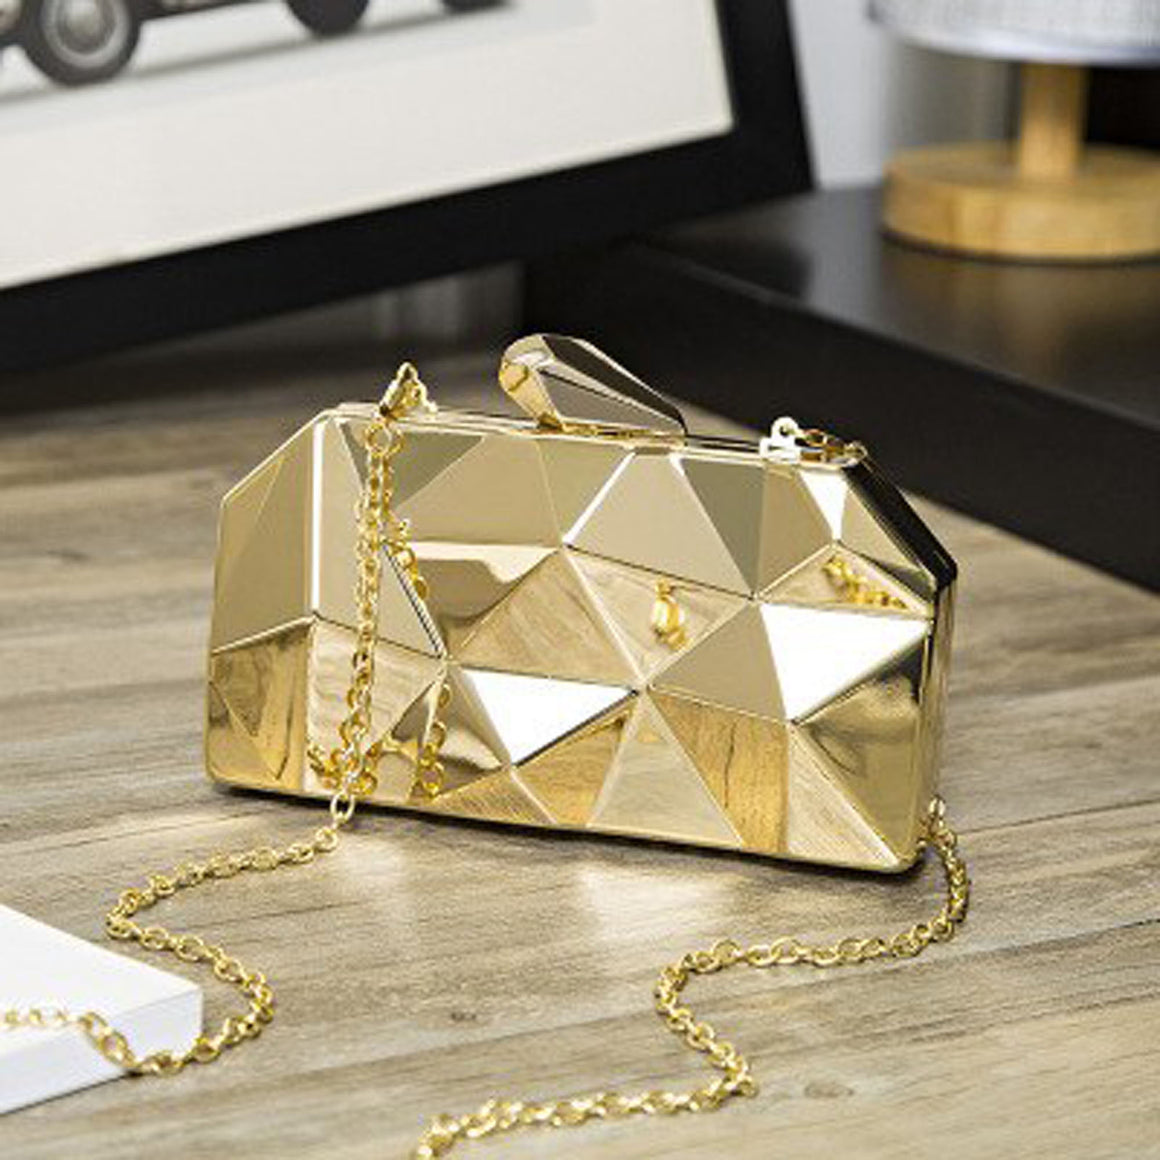 Sexy Fashion women Handbags Luxury Shiny Metal Clutch Six Angle Unique Design Evening  Bag Shoulder Crossbody Party Purses